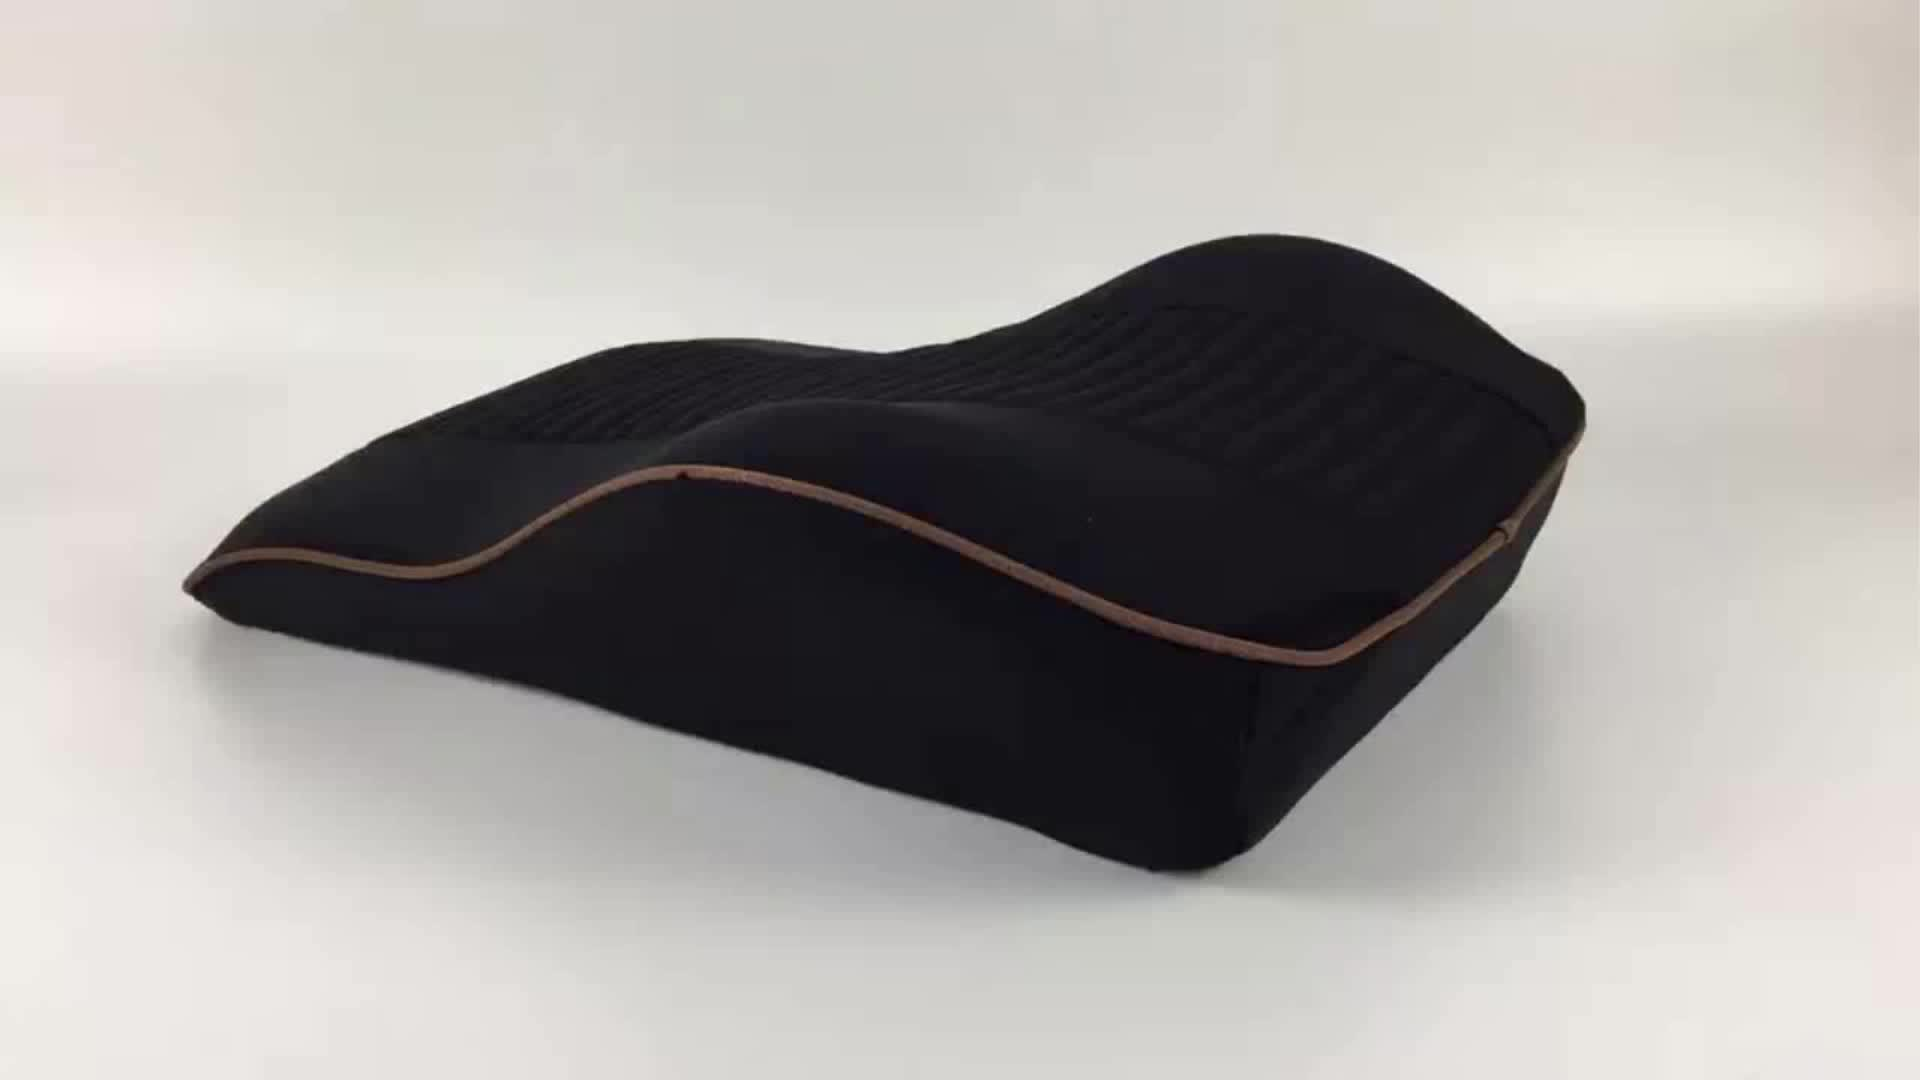 Memory Foam Gel Car Seat Back Cushion Orthopedic Design For Back Pain Relief And Support For Office Chair, Car Seat.